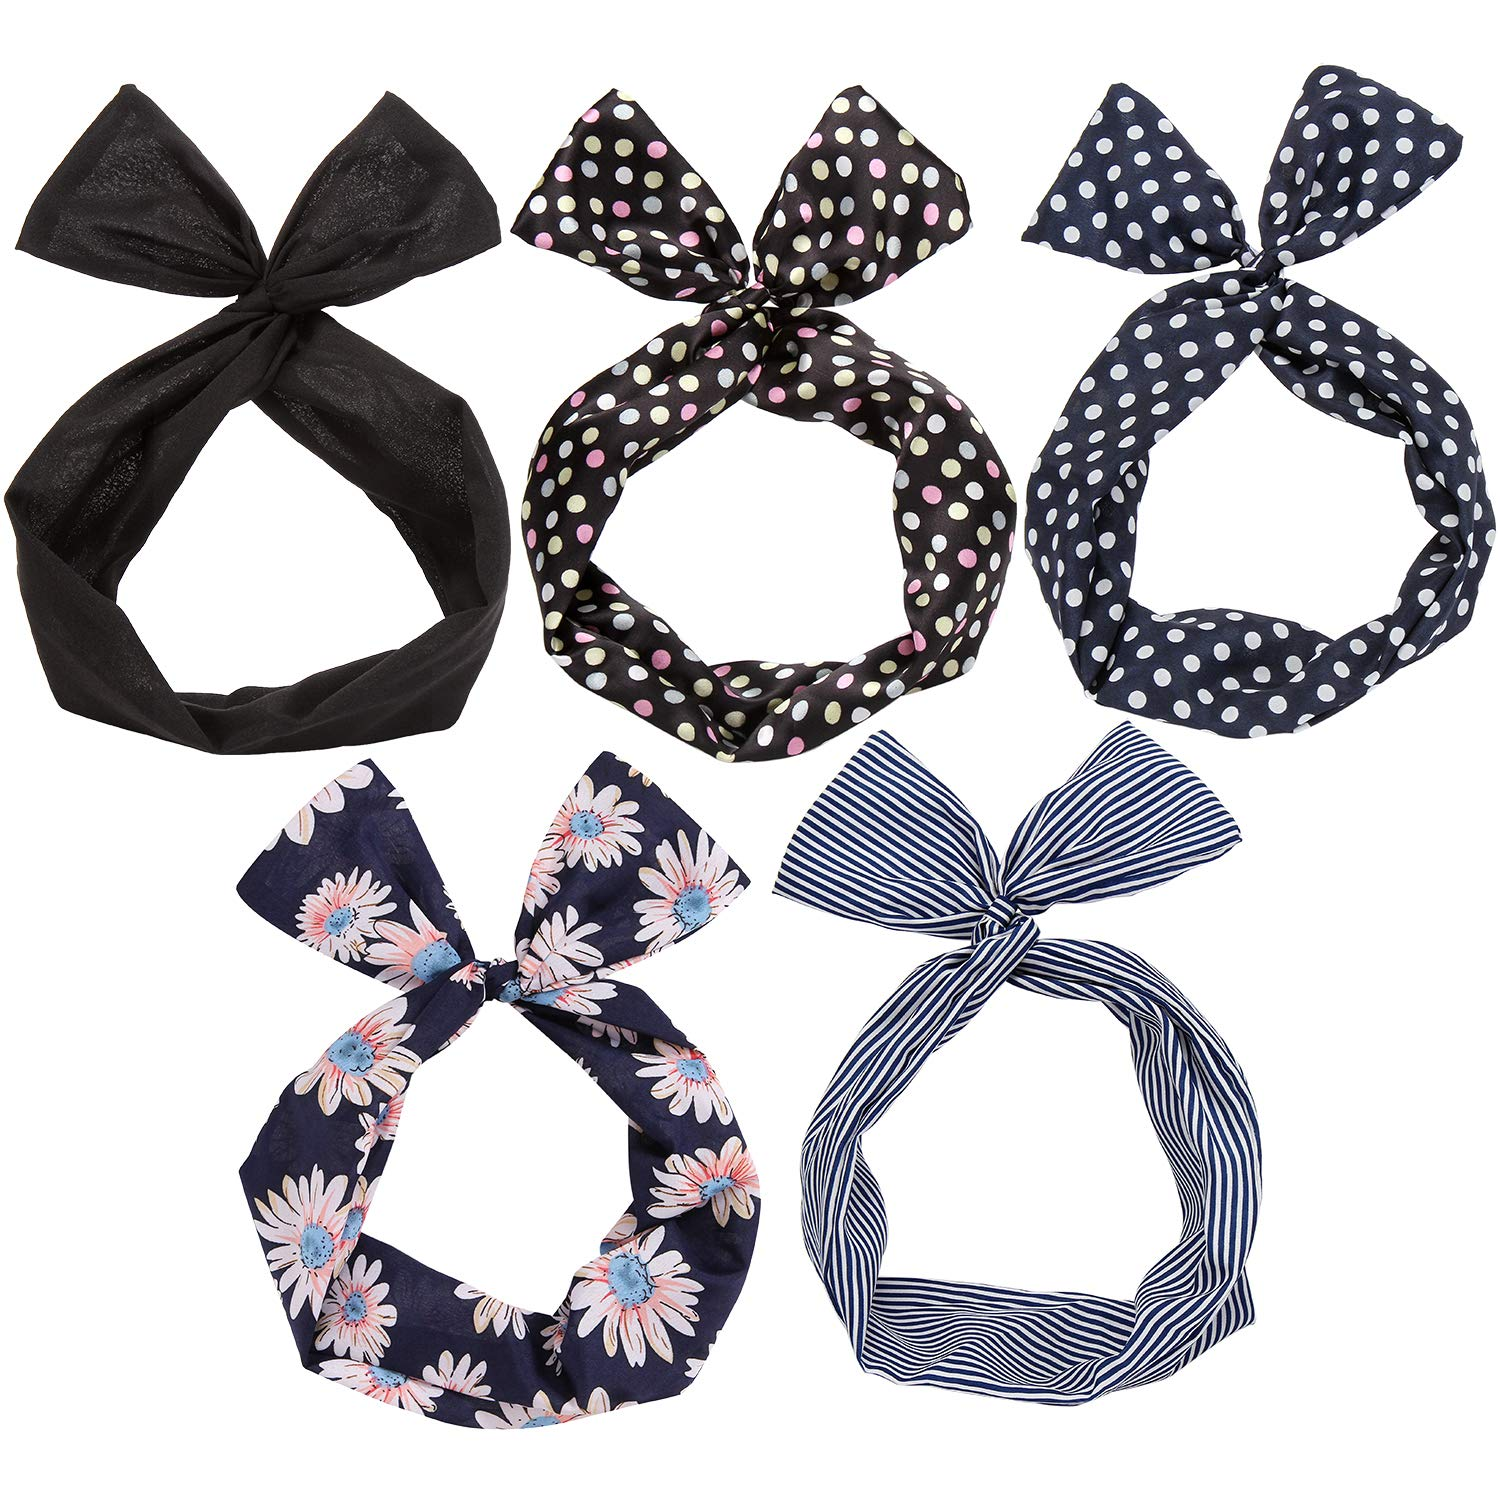 Wired Headbands Scarf Wrap Hair Accessory Hairband (5 Packs)